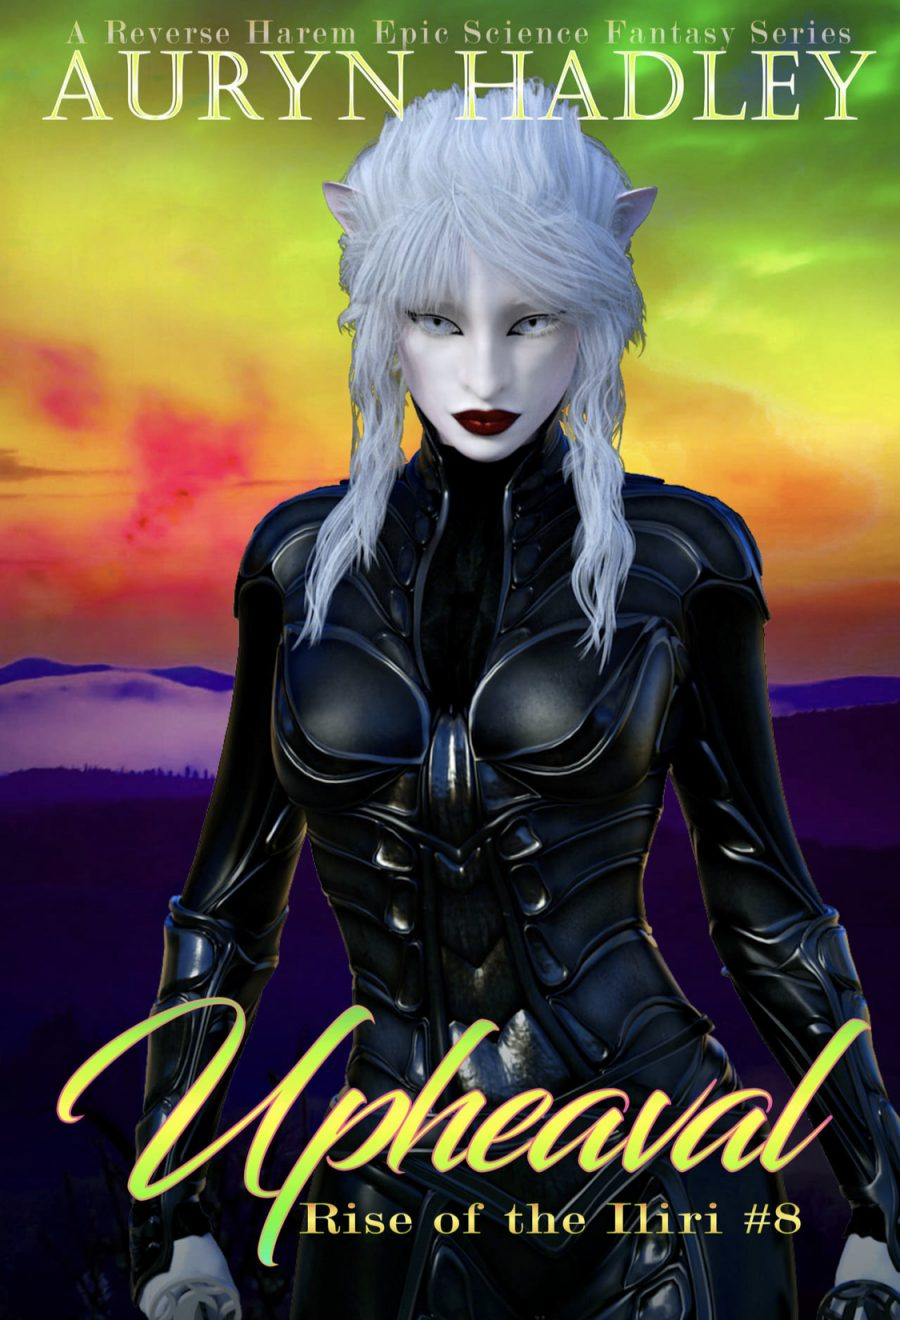 Upheaval (Rise of the Iliri - Book 8) by Auryn Hadley - A Book Review #BookReview #SciFi #EpicFantasy #SlowBurn #RH #5Stars #KindleUnlimited #KU #SeriesComplete